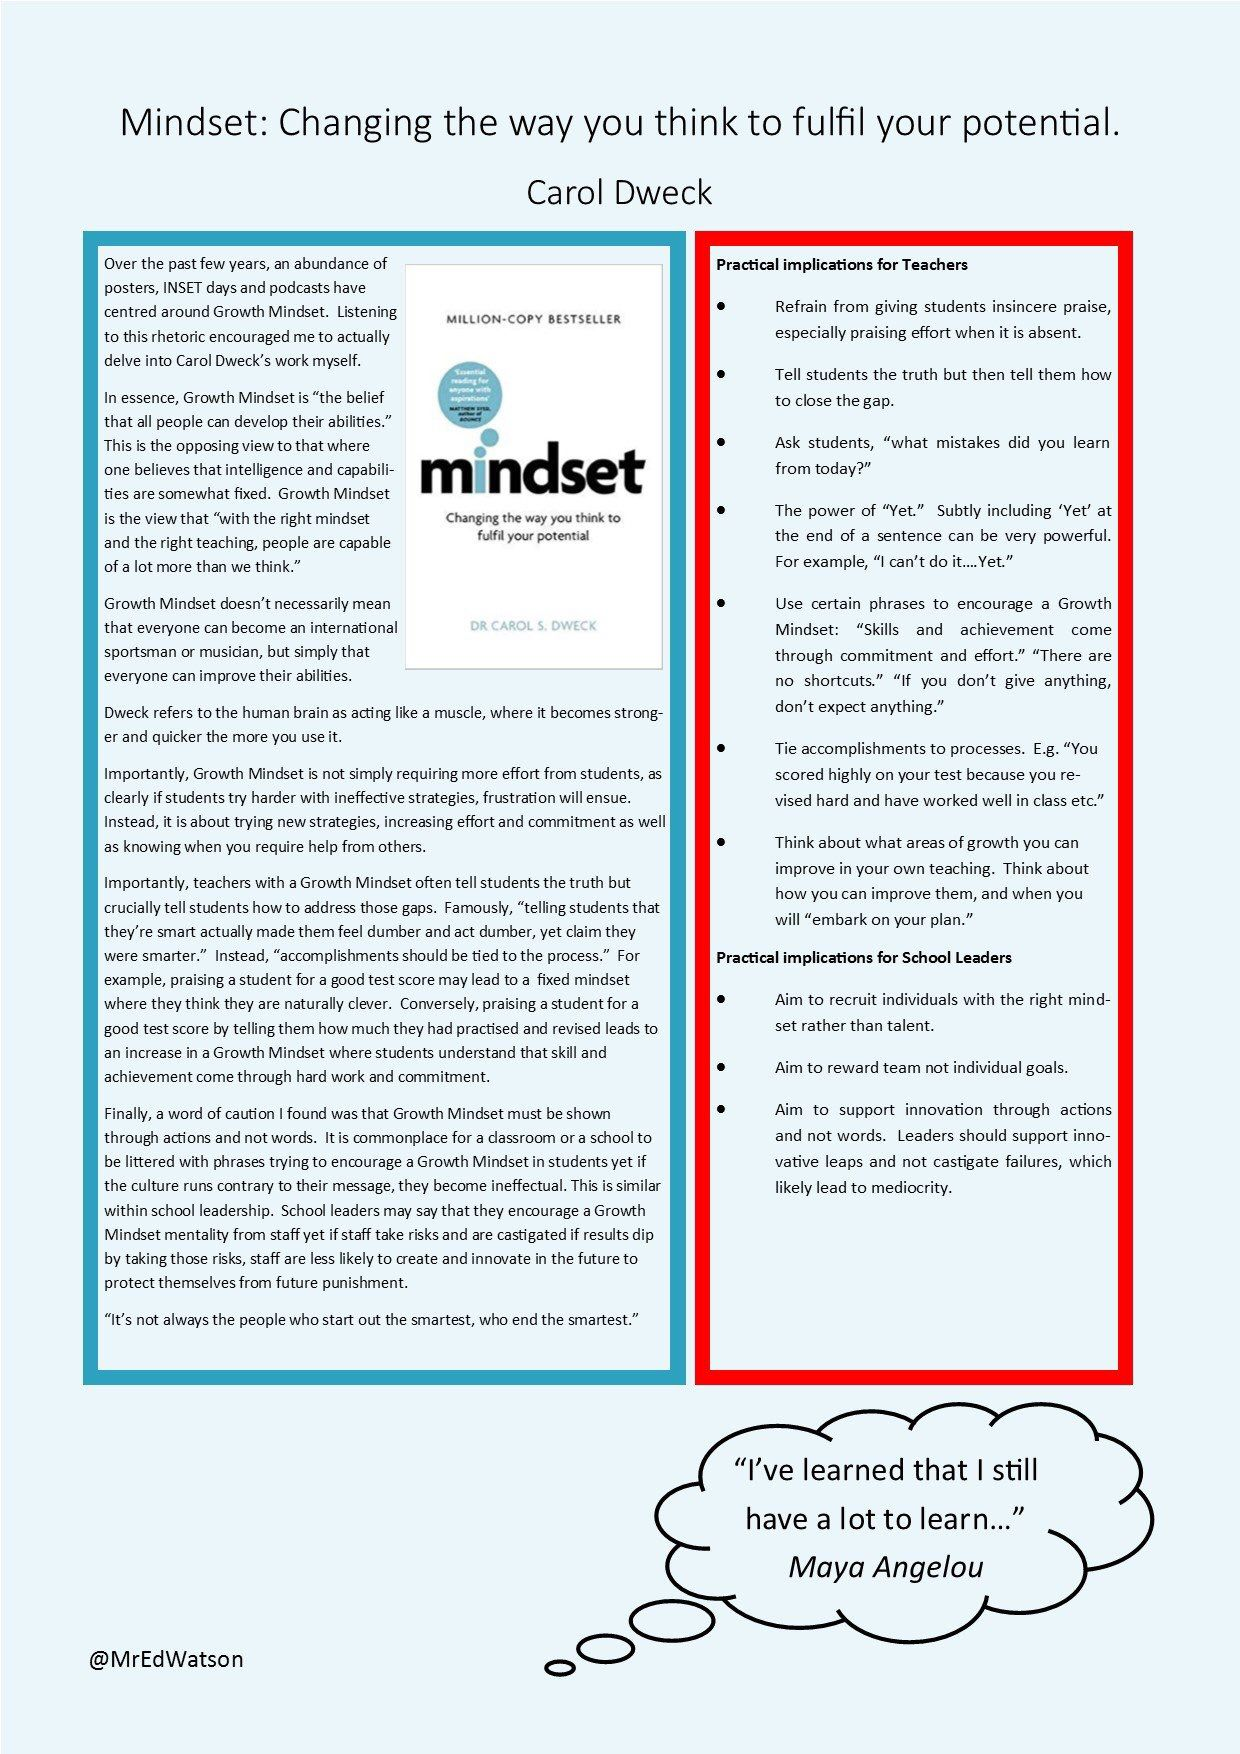 Good overview of growth mindset in brief summary form. https://t.co/uLm7lScR55